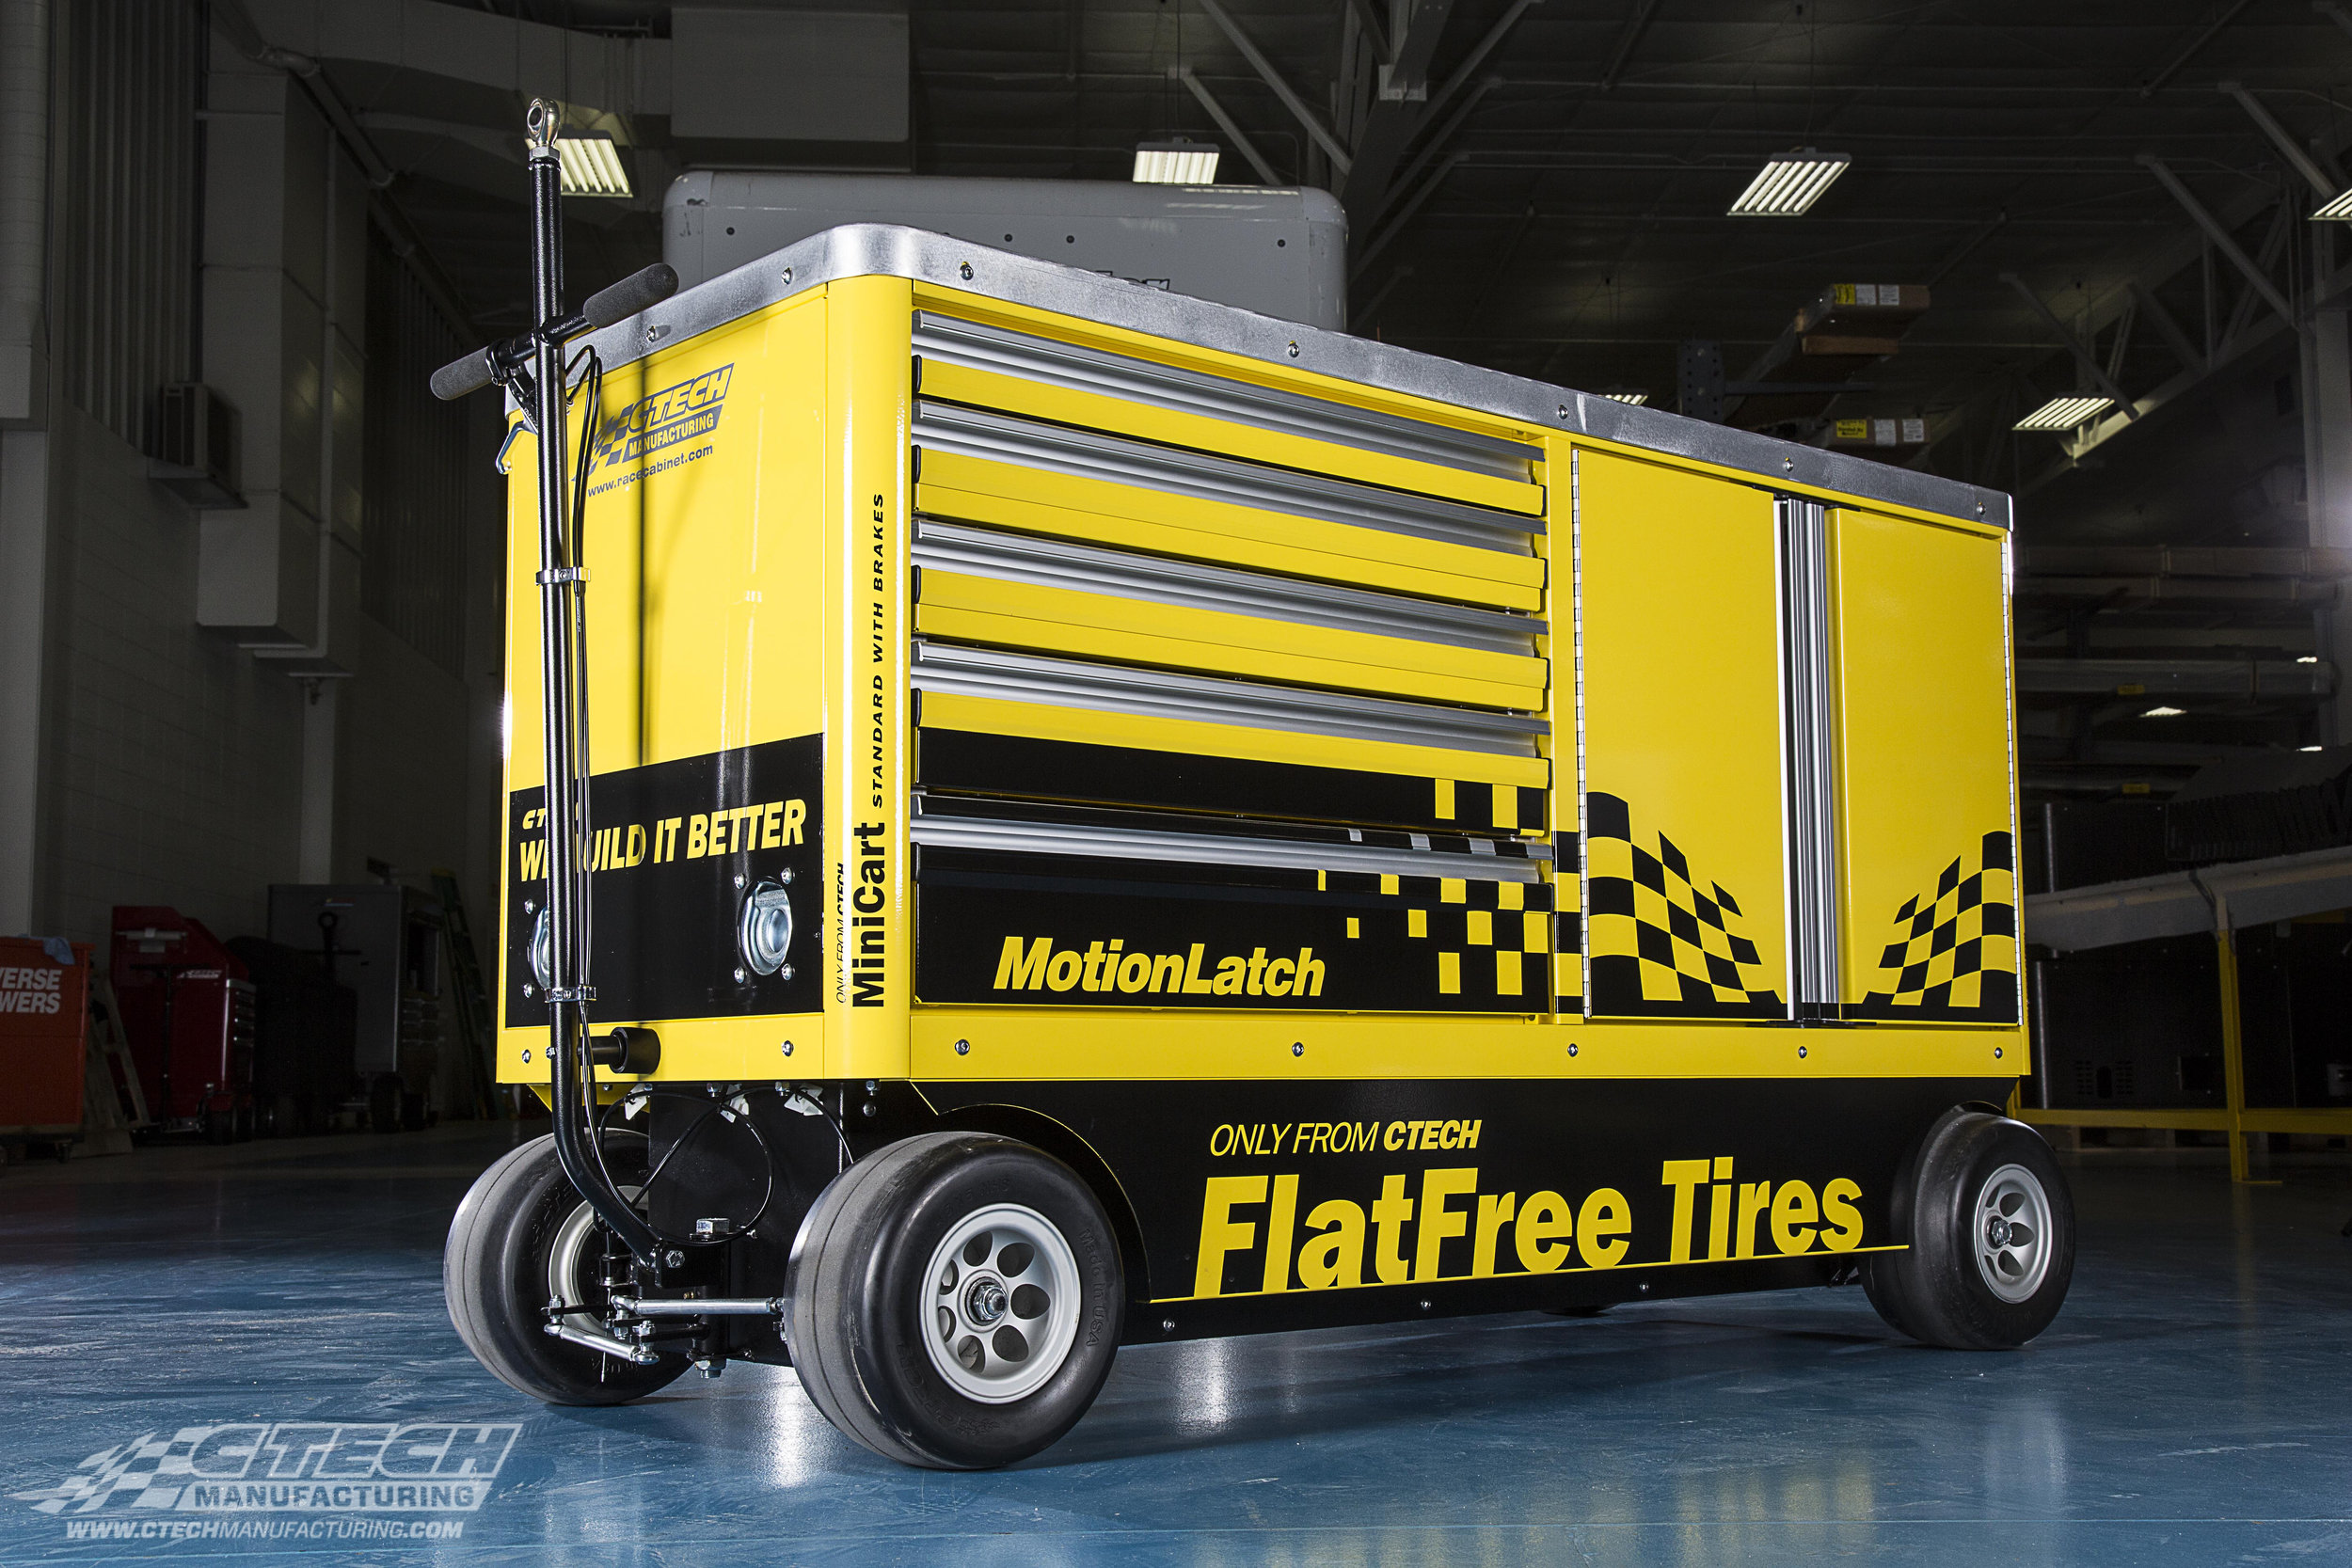 """All CTECH Mini Carts come with an unbeatable 250lb load rating per drawer, along with patented MotionLatch and FlatFree technology to create the perfect """"one-sided"""" tool/equipment storage cart."""